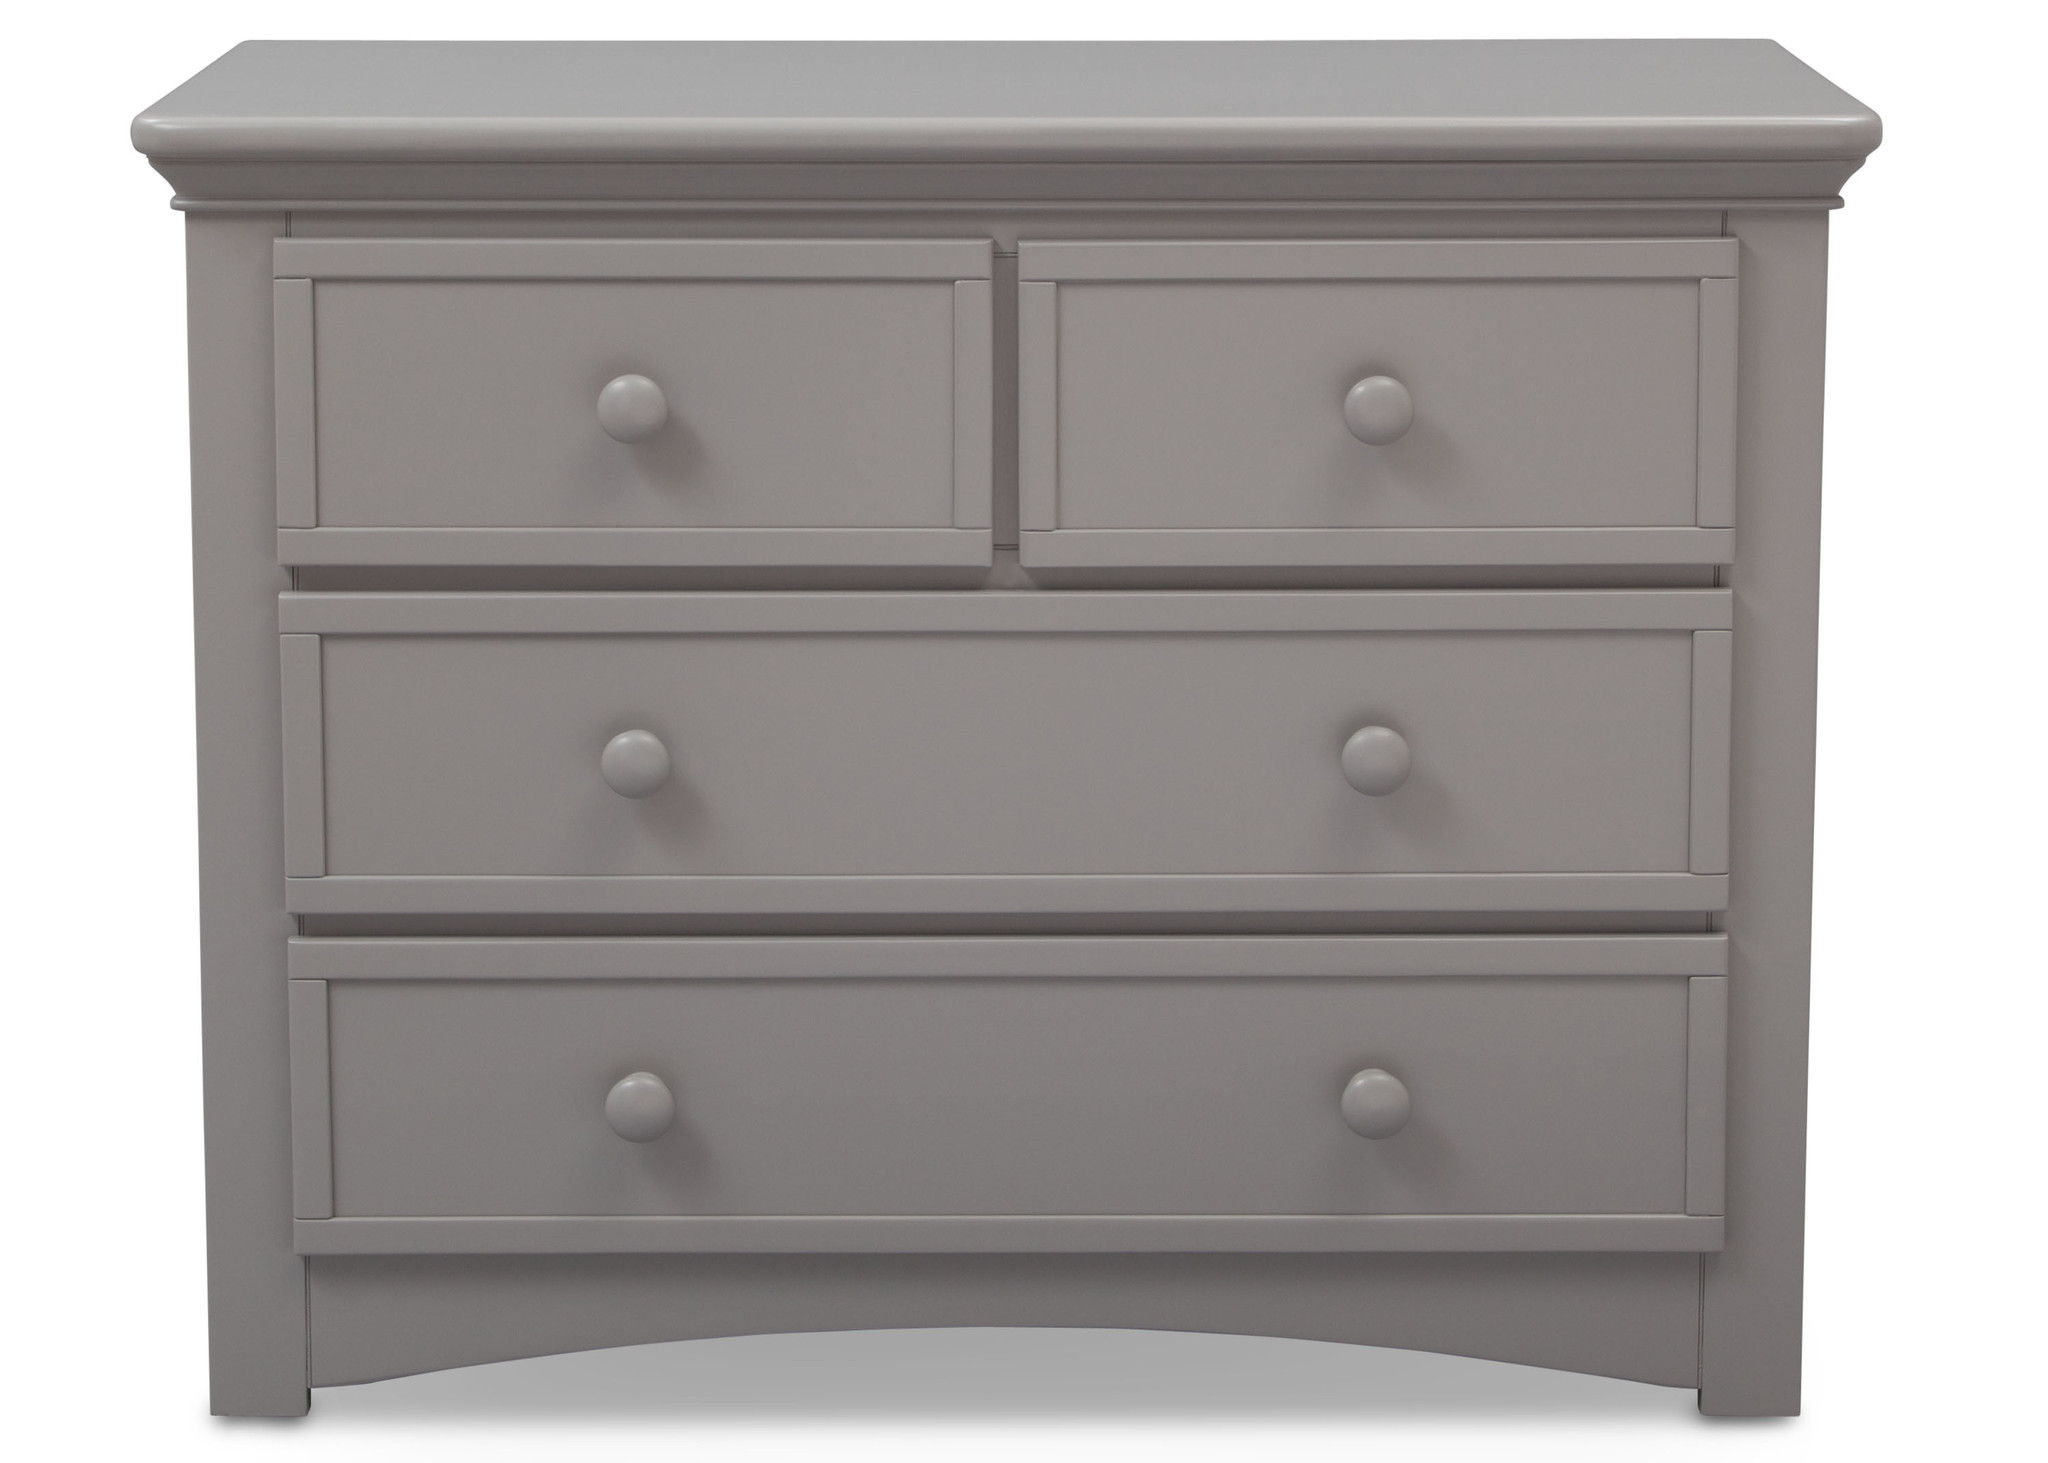 Appealing 4 drawer dresser with beautiful knob pull drawers for home furniture ideas